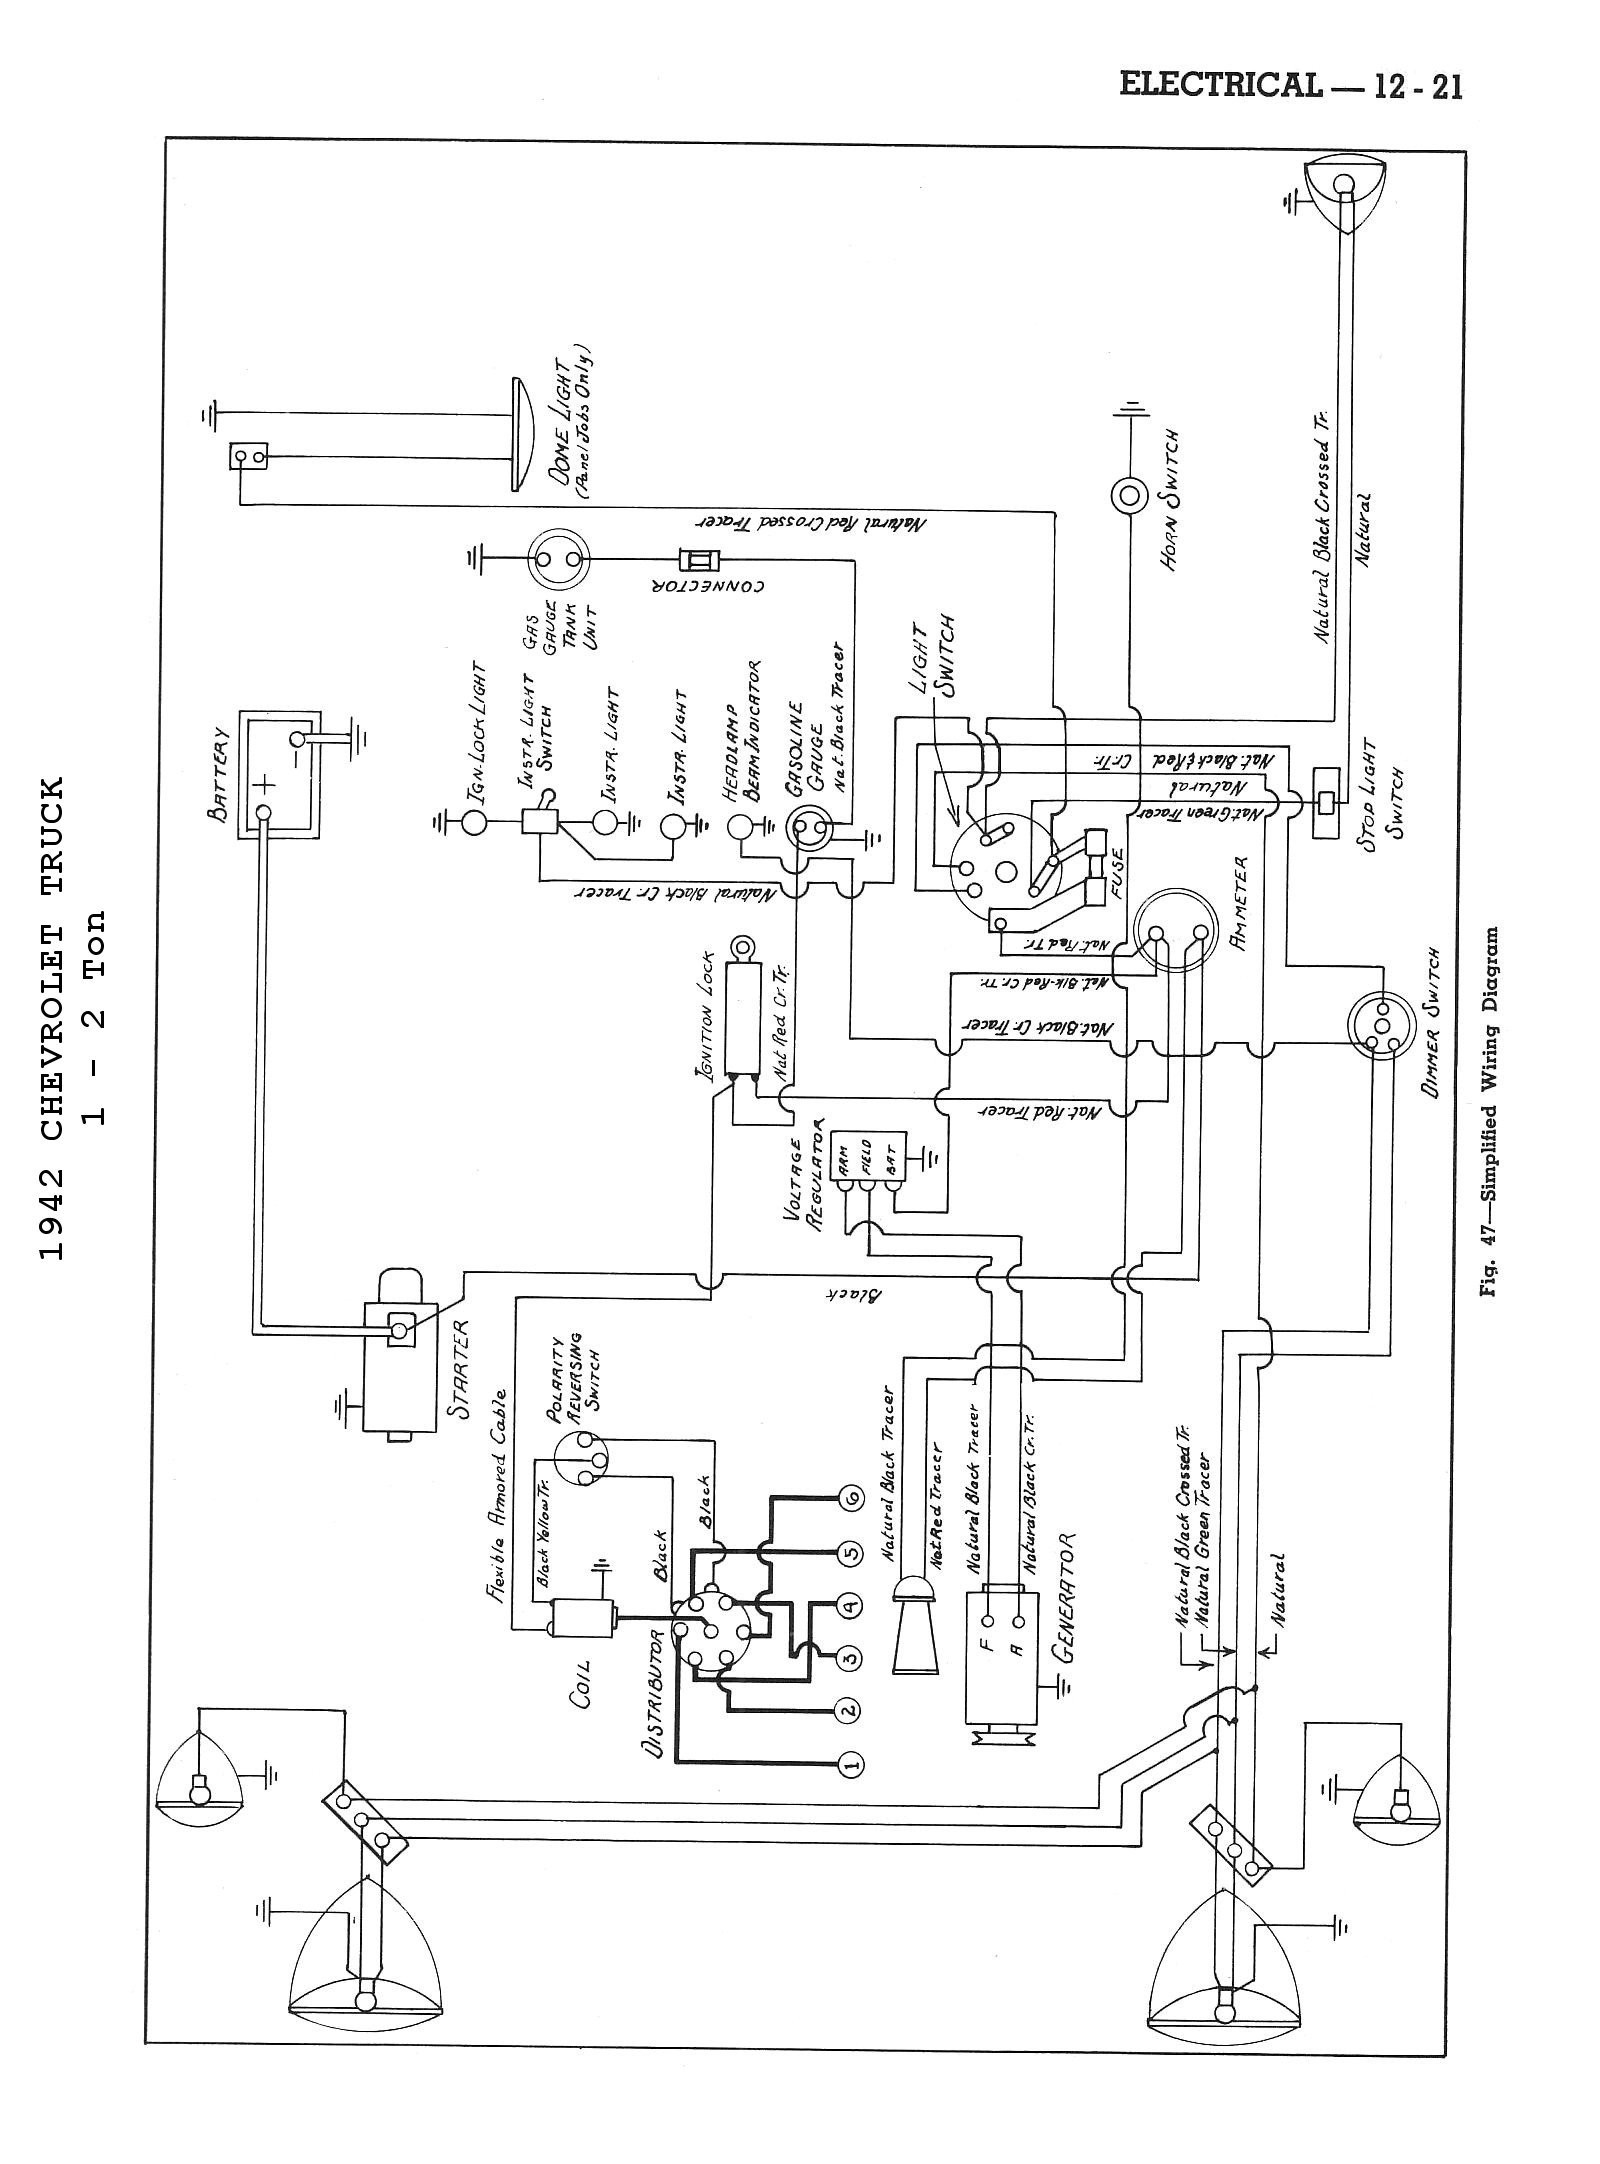 Wiring Diagram for Turn Signals Turn Signal Wiring Diagram Chevy Truck Shahsramblings Of Wiring Diagram for Turn Signals